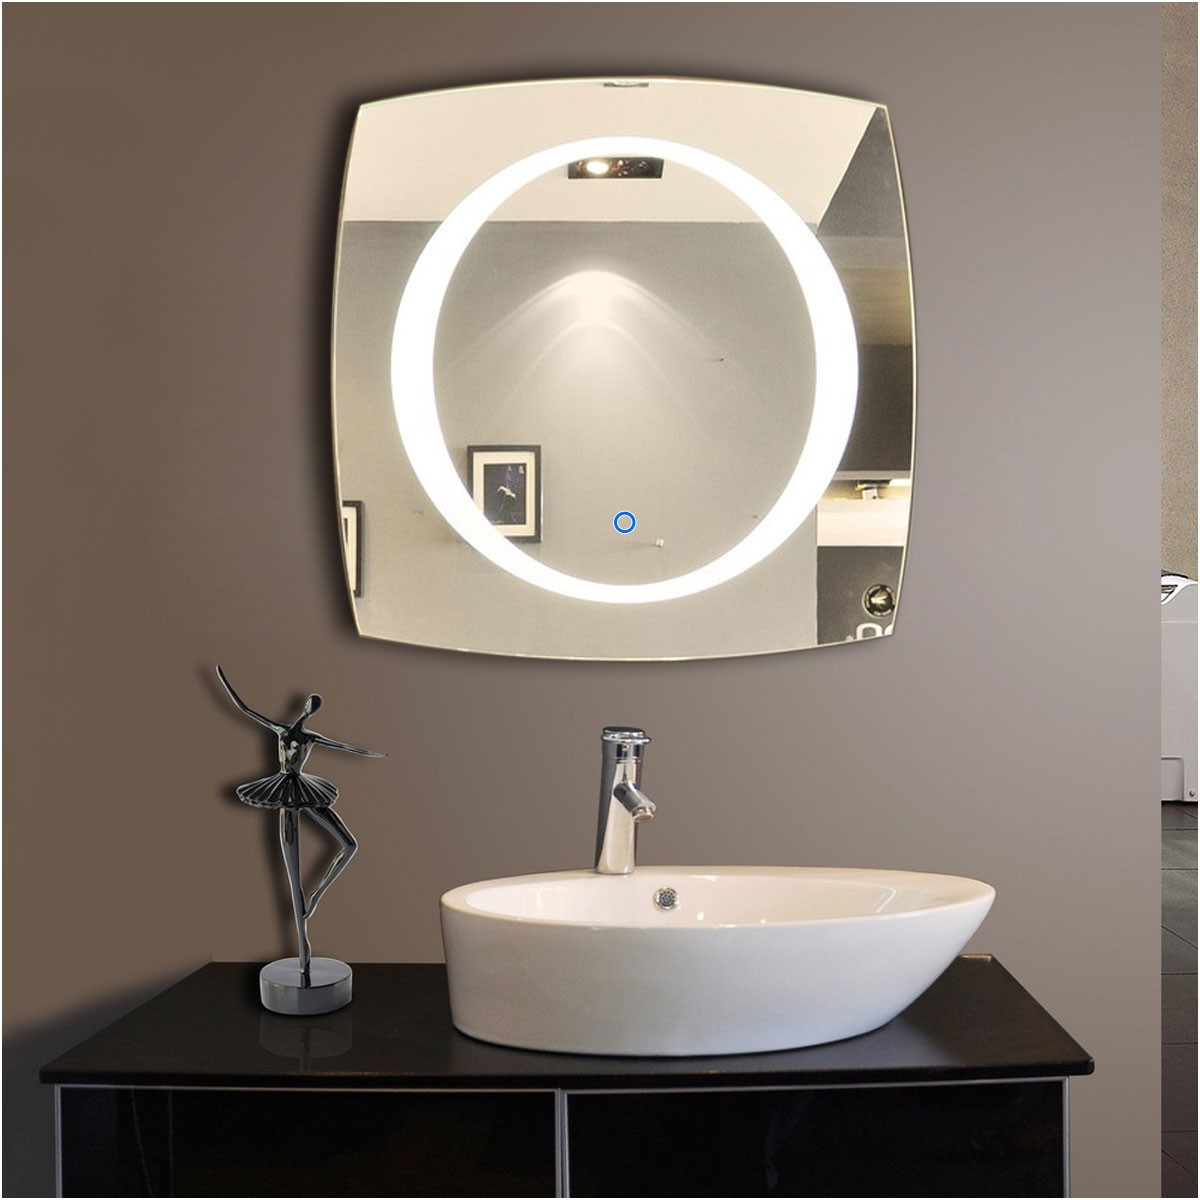 Fresh Bathroom Mirrors Made to Measure